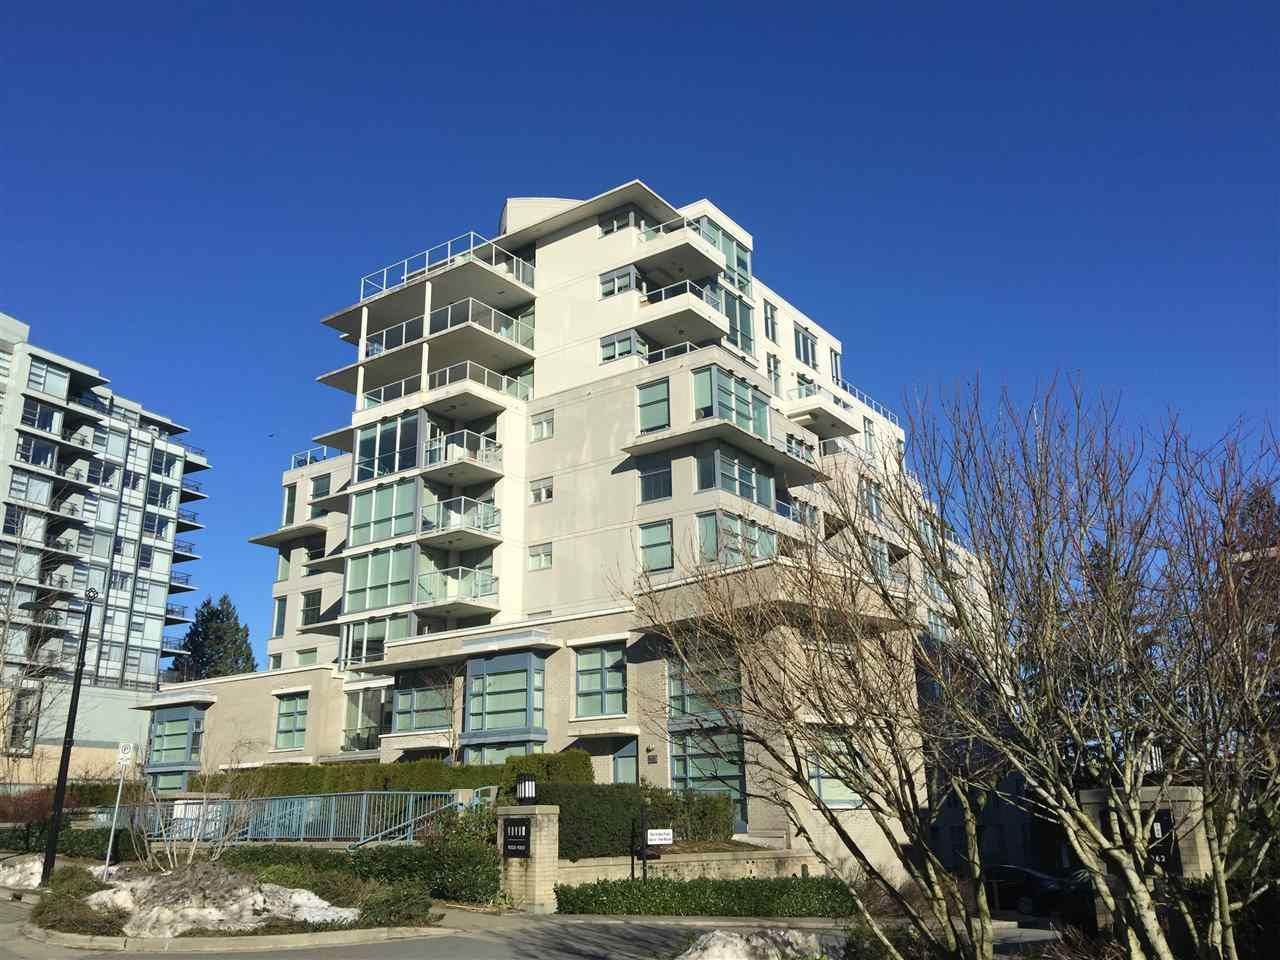 Main Photo: 407 9232 UNIVERSITY CRESCENT in Burnaby: Simon Fraser Univer. Condo for sale (Burnaby North)  : MLS®# R2144915